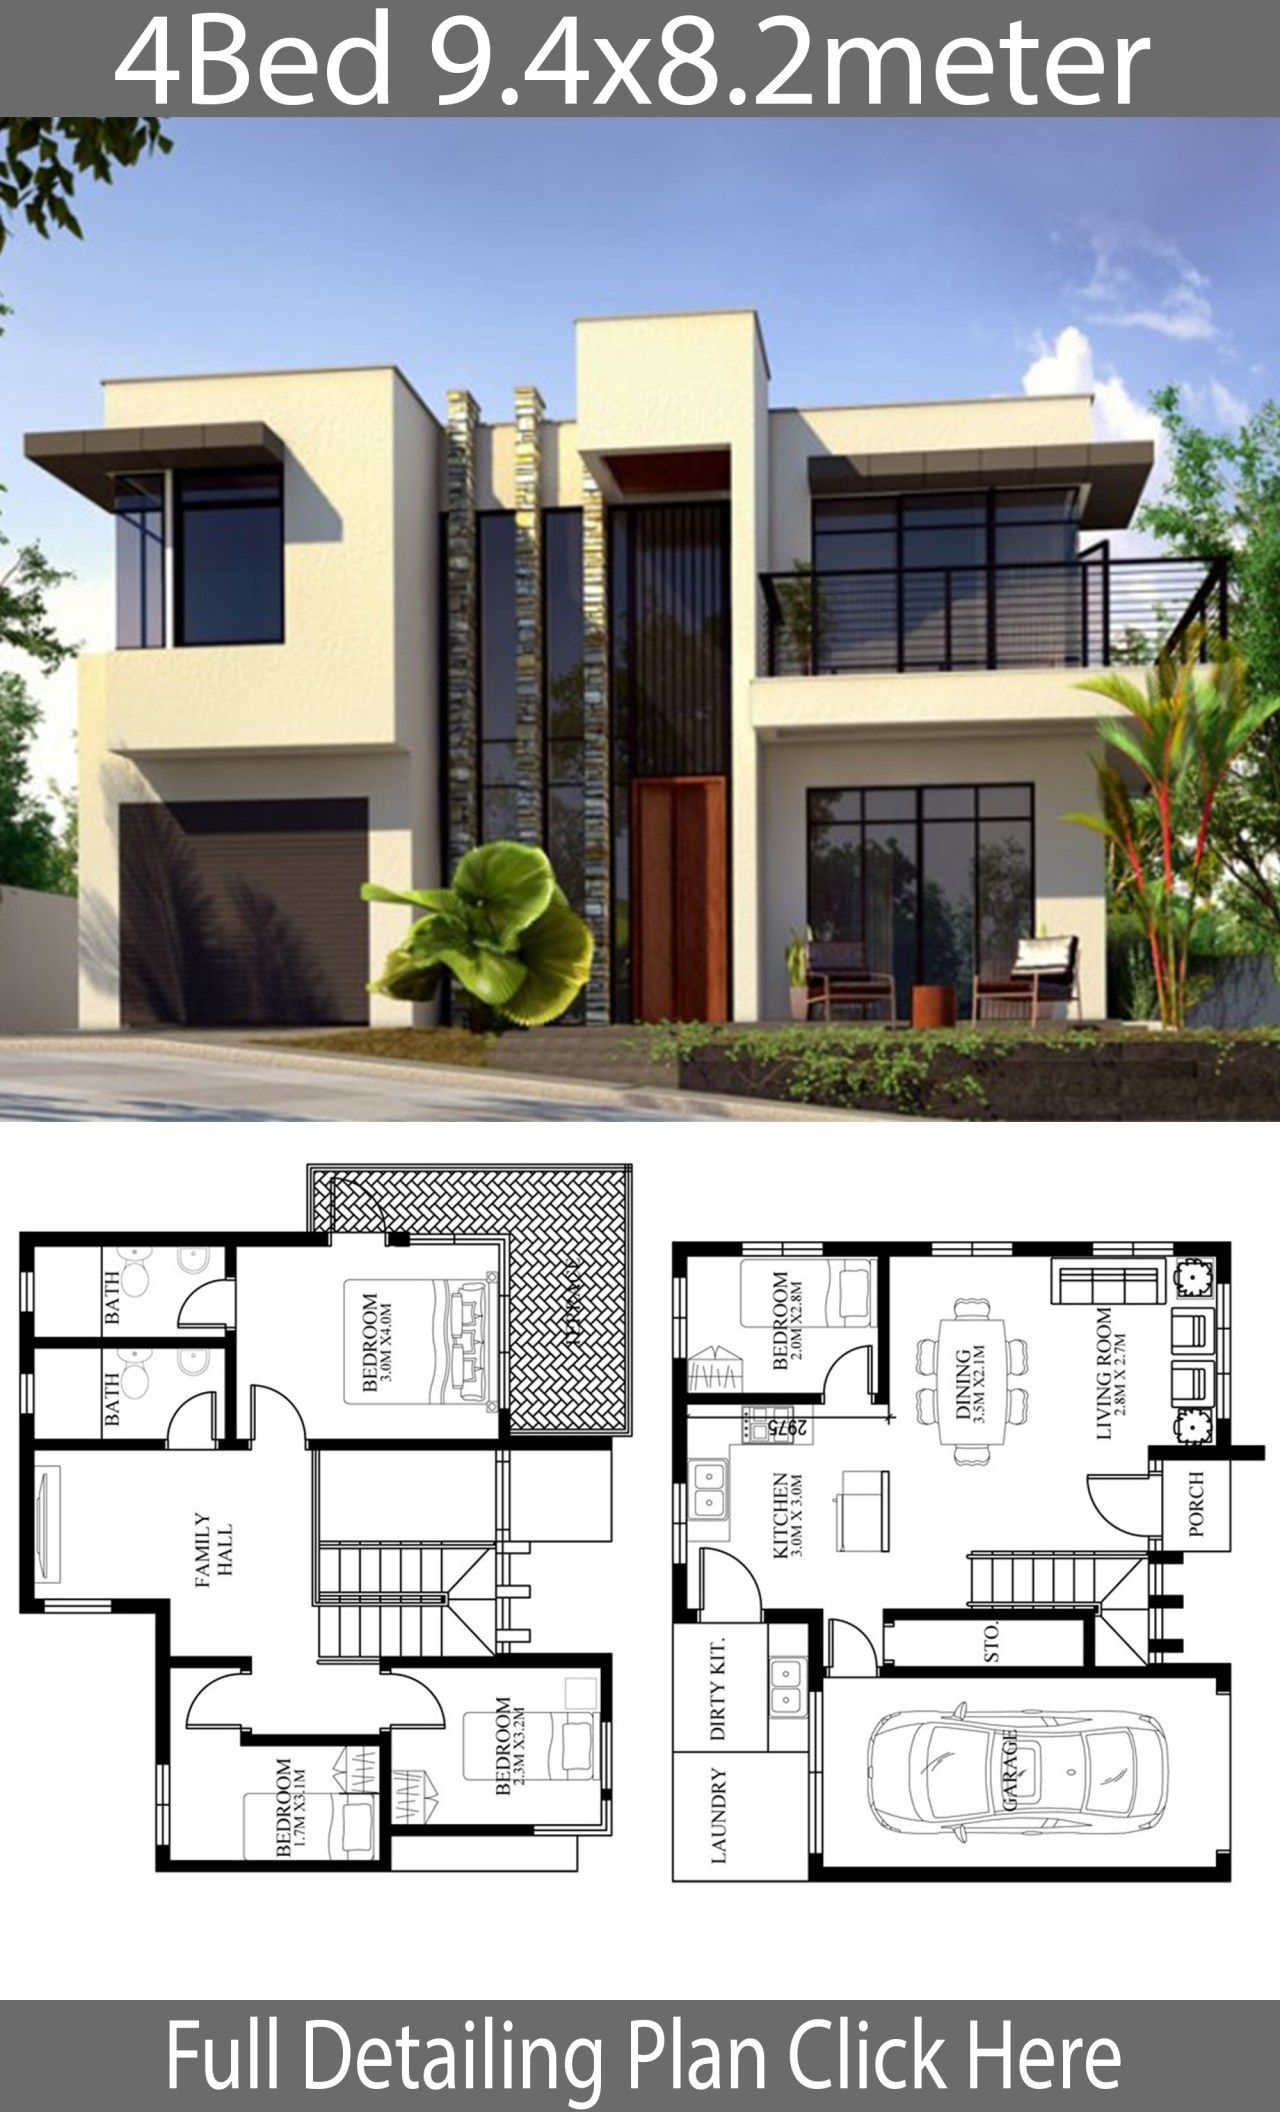 Small Home Design Plan 9 4x8 2m With 4 Bedrooms Home Ideas House Construction Plan Modern Style House Plans Duplex House Design